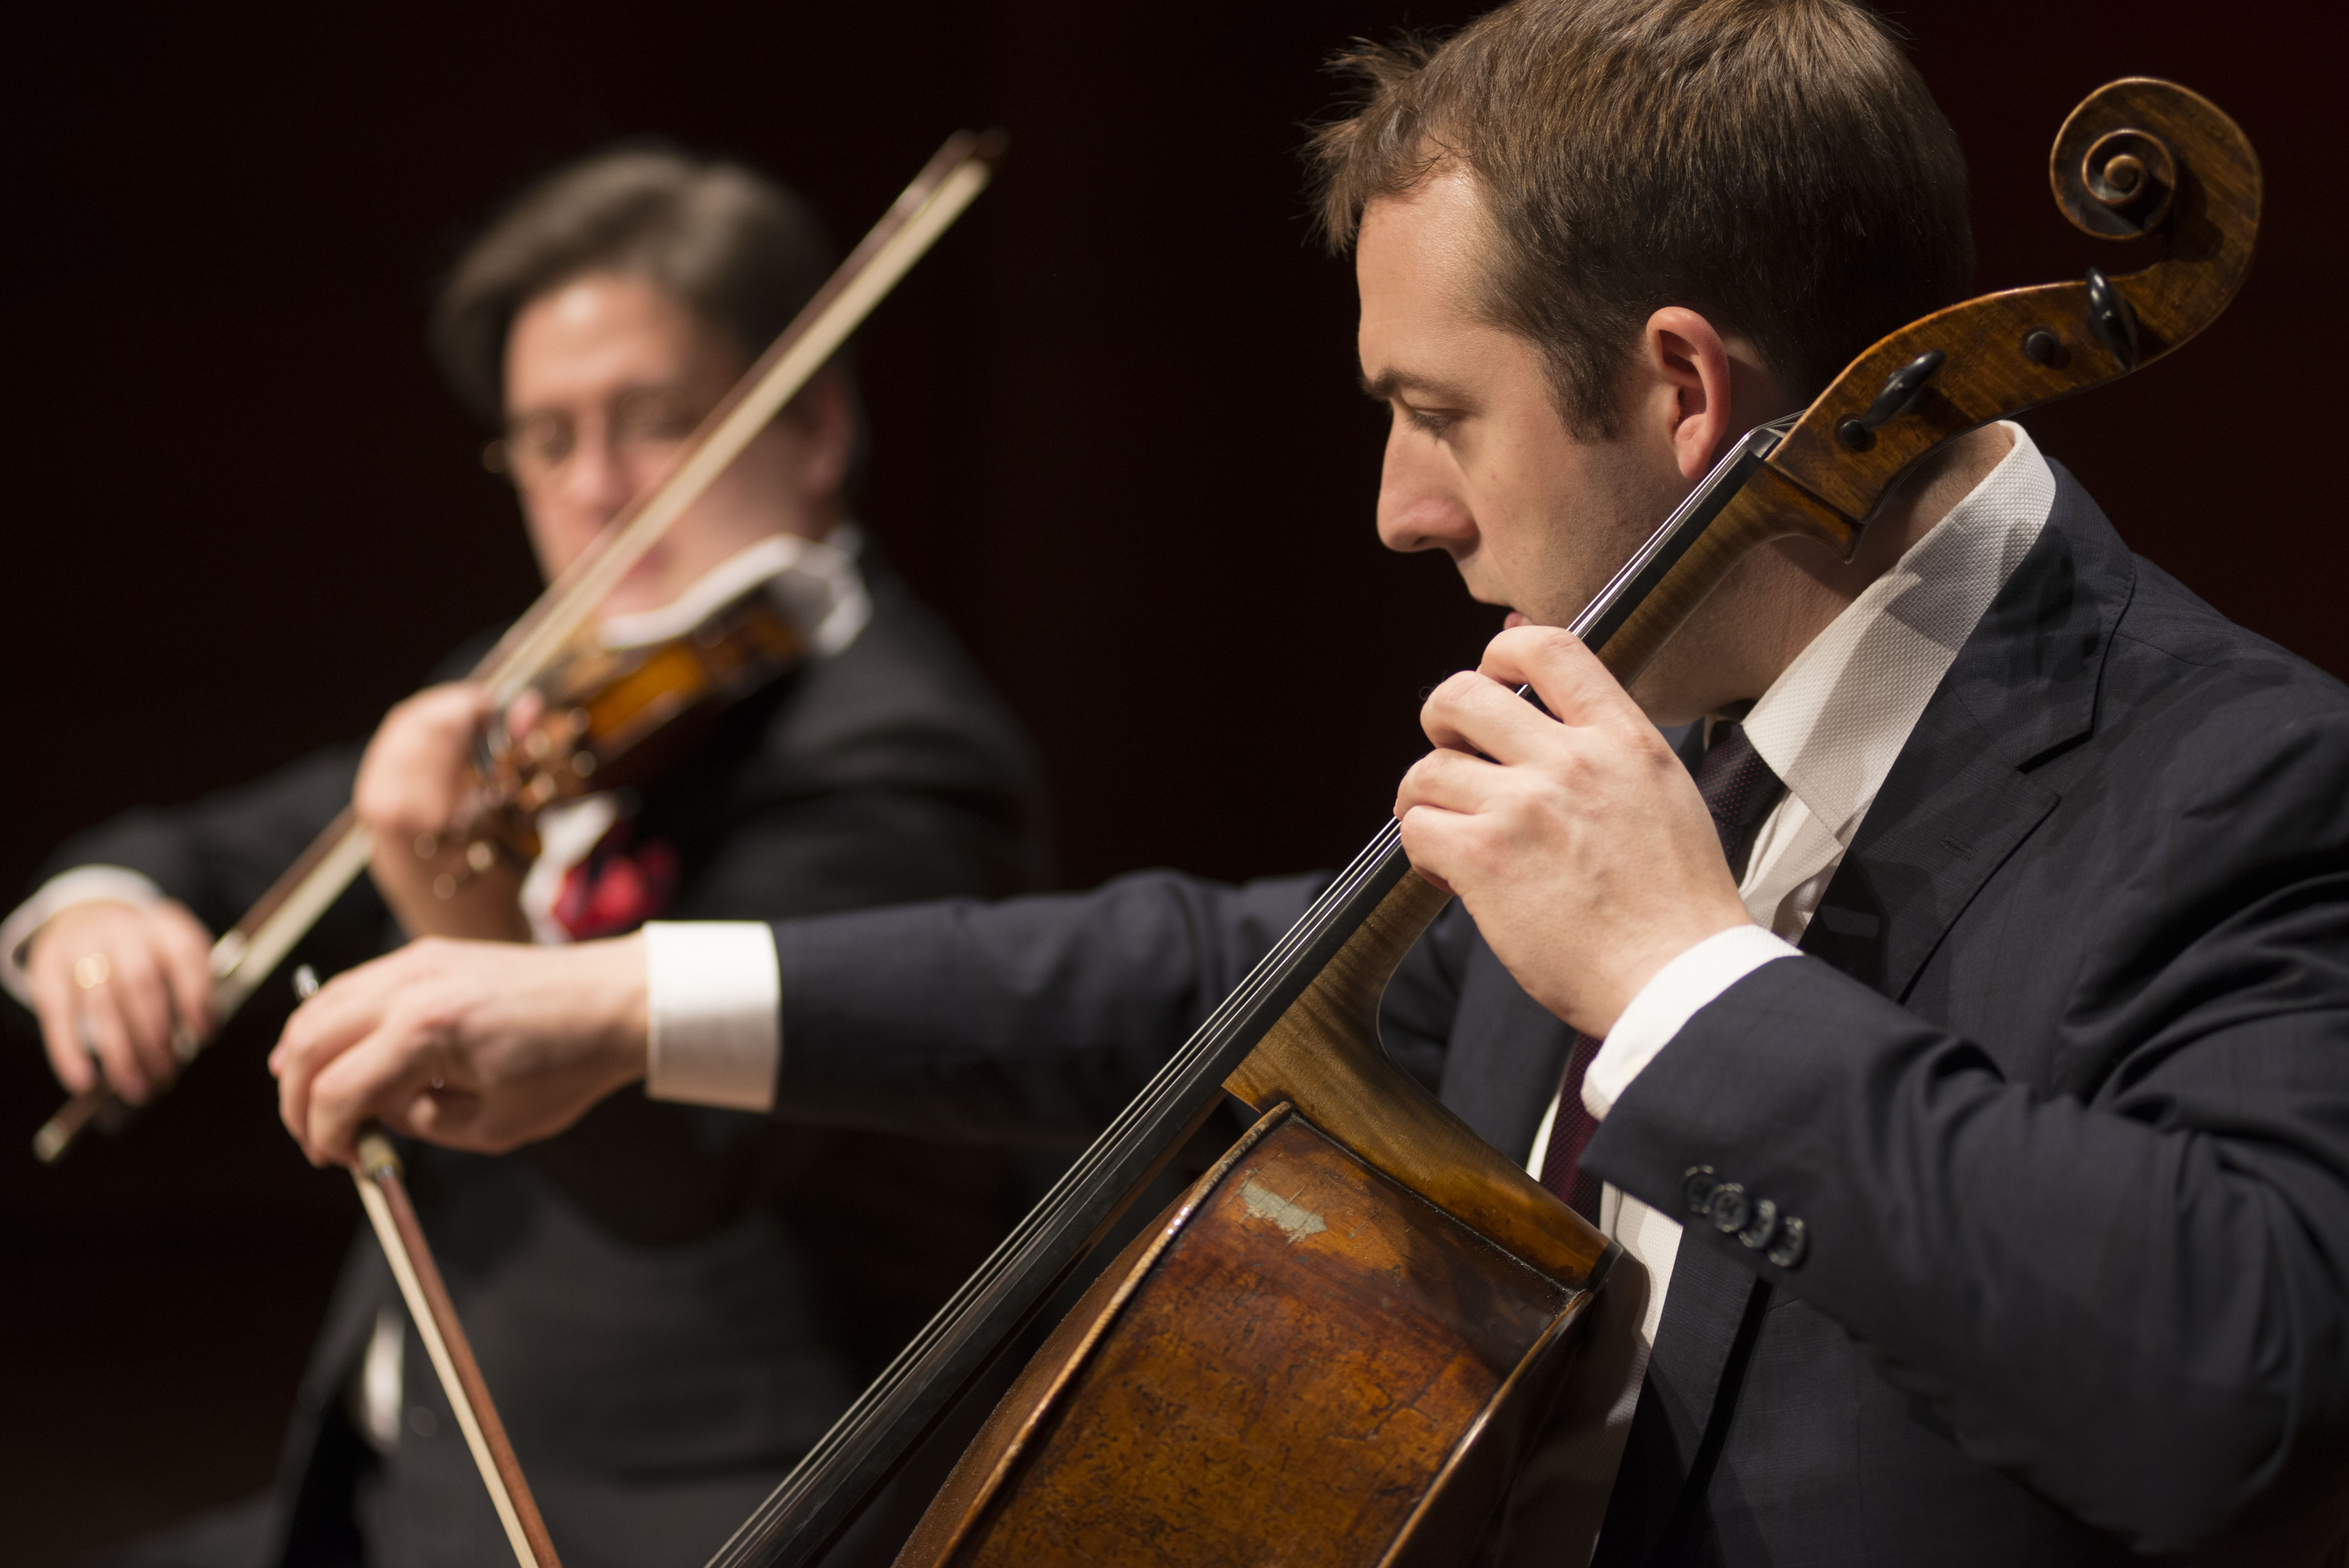 The Chamber Music Society of Lincoln Center performs at Alice Tully Hall